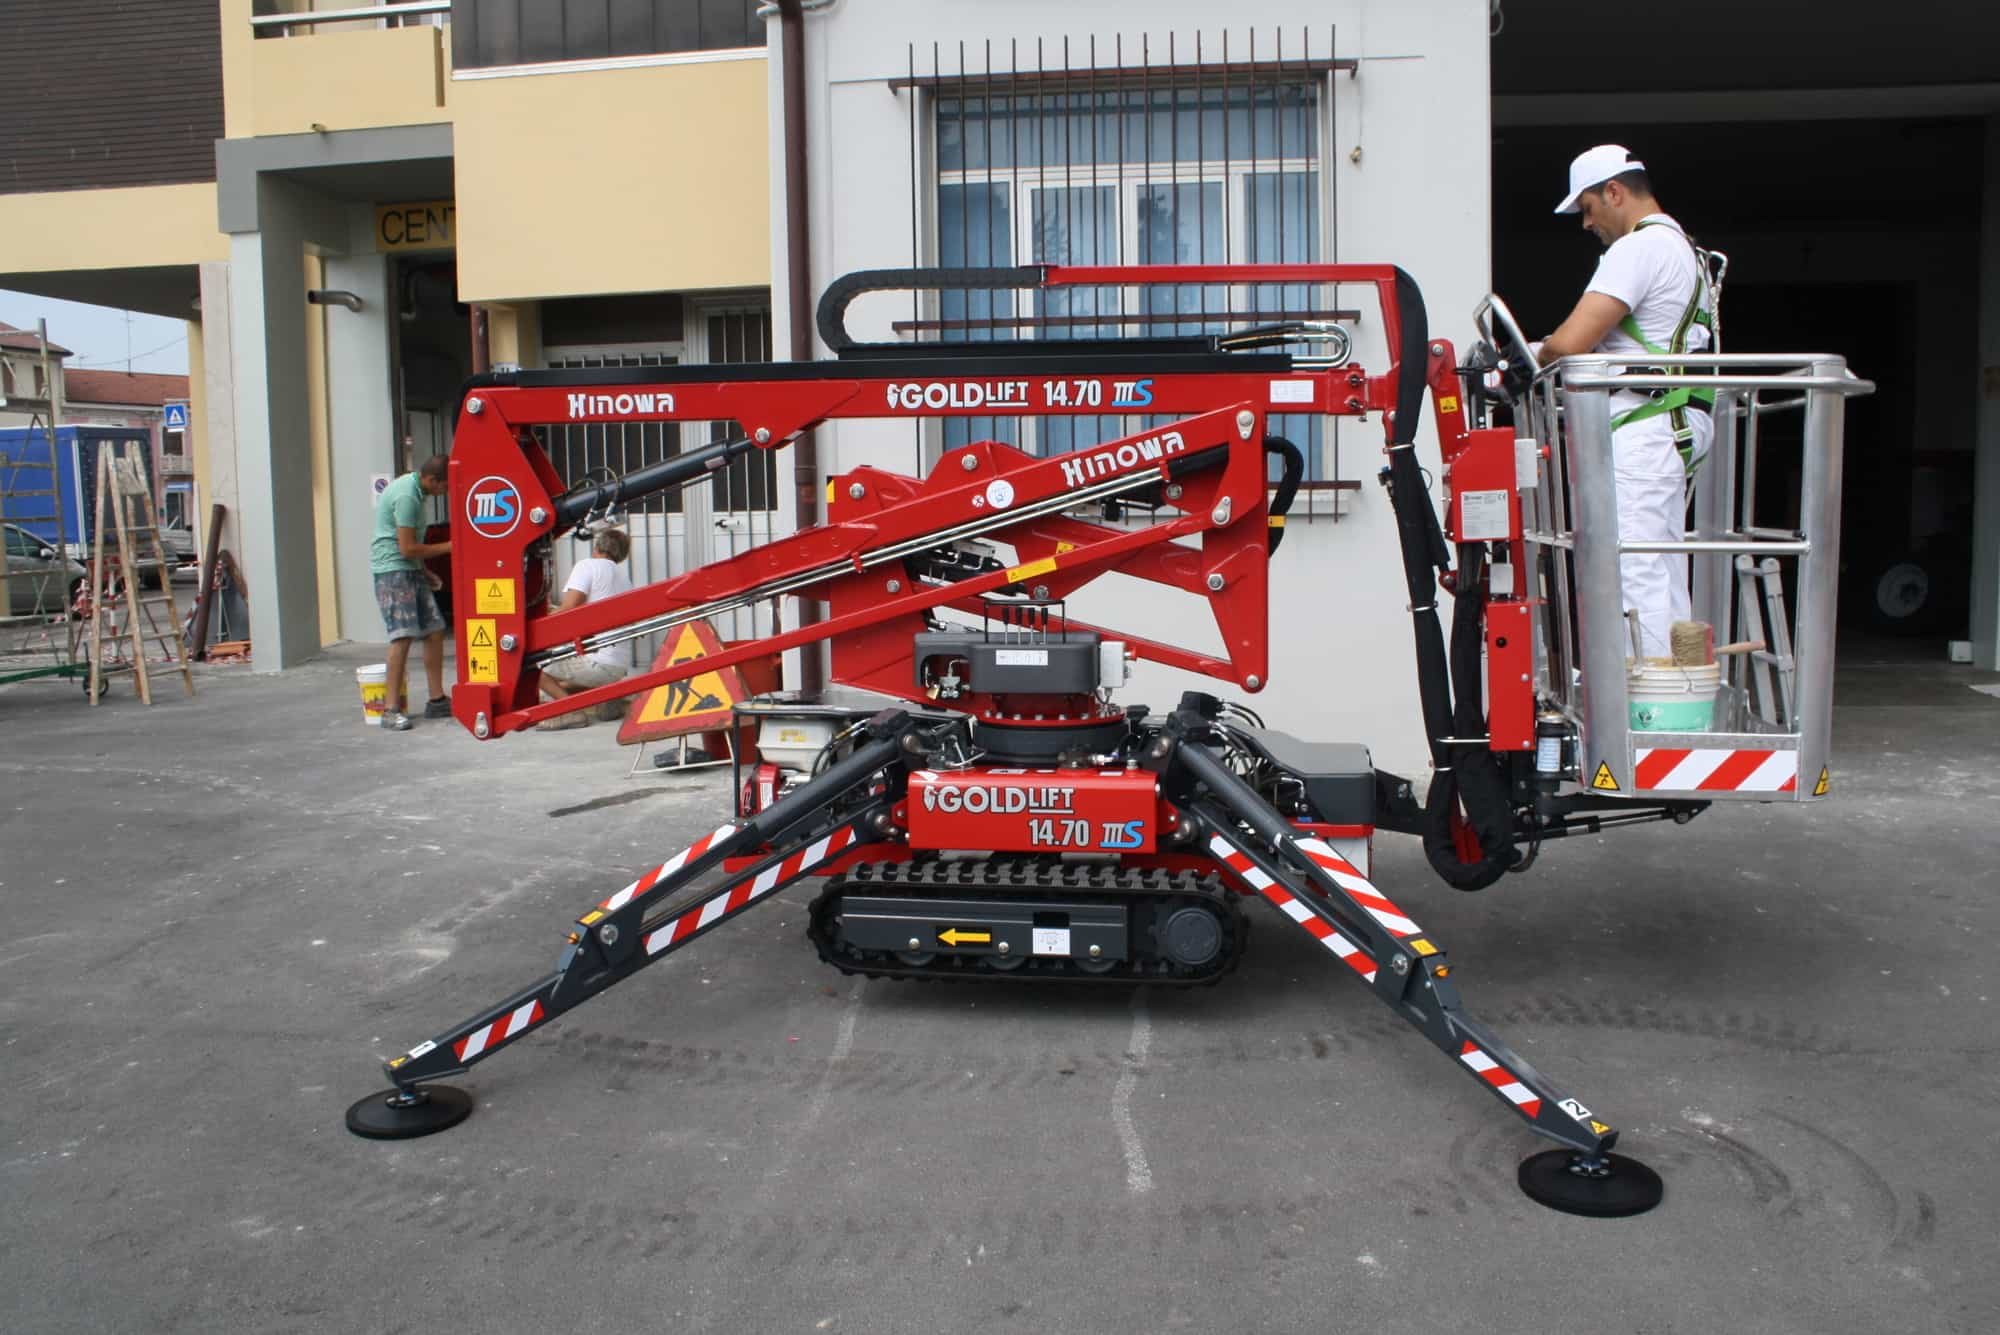 Rent Spider Lift - Hinowa Goldlift 14.70 IIIS